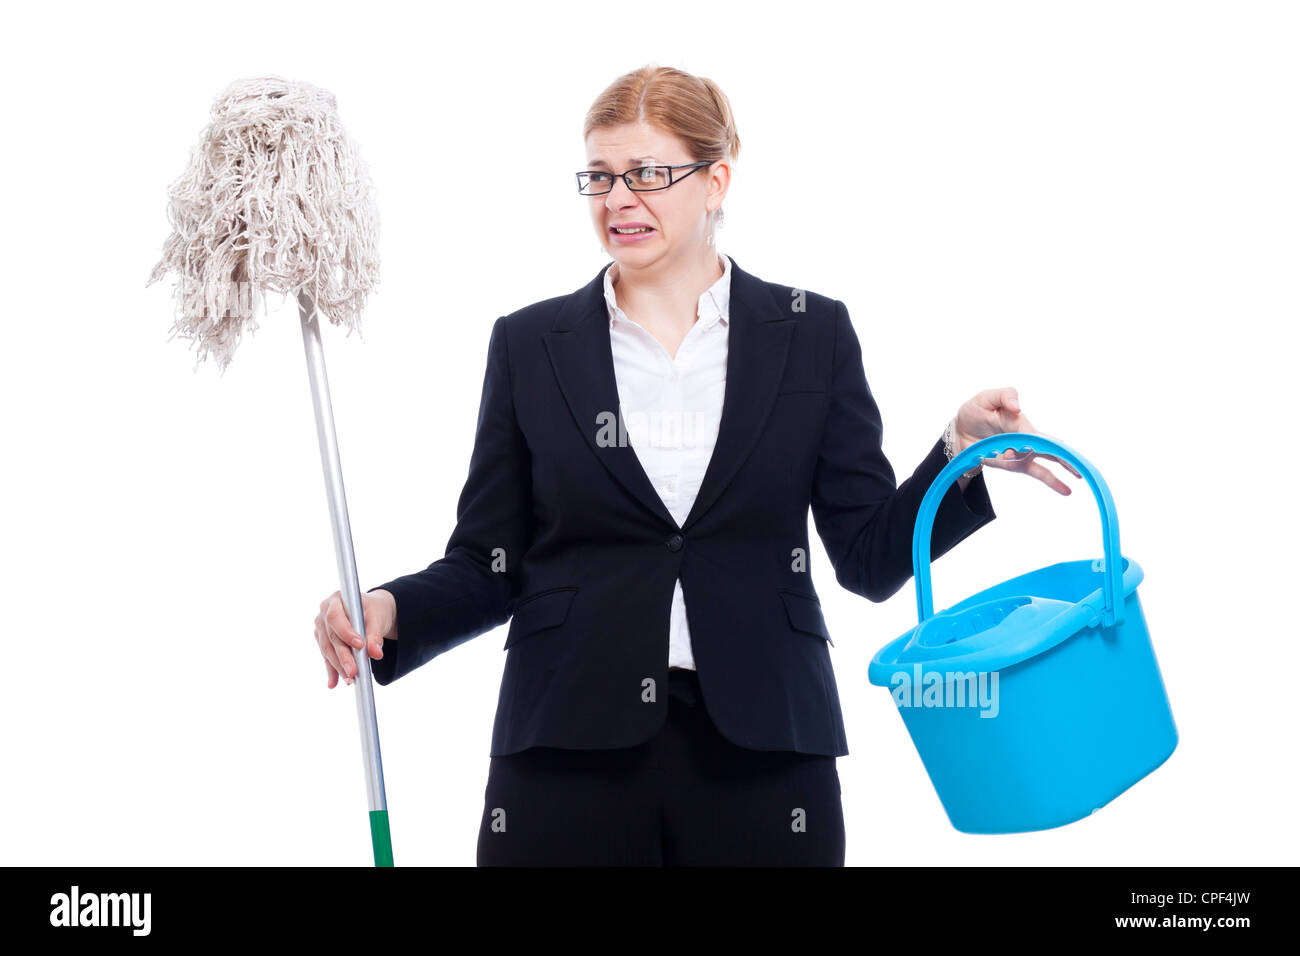 Unhappy disgusted businesswoman with bucket and mop, isolated on white background. - Stock Image